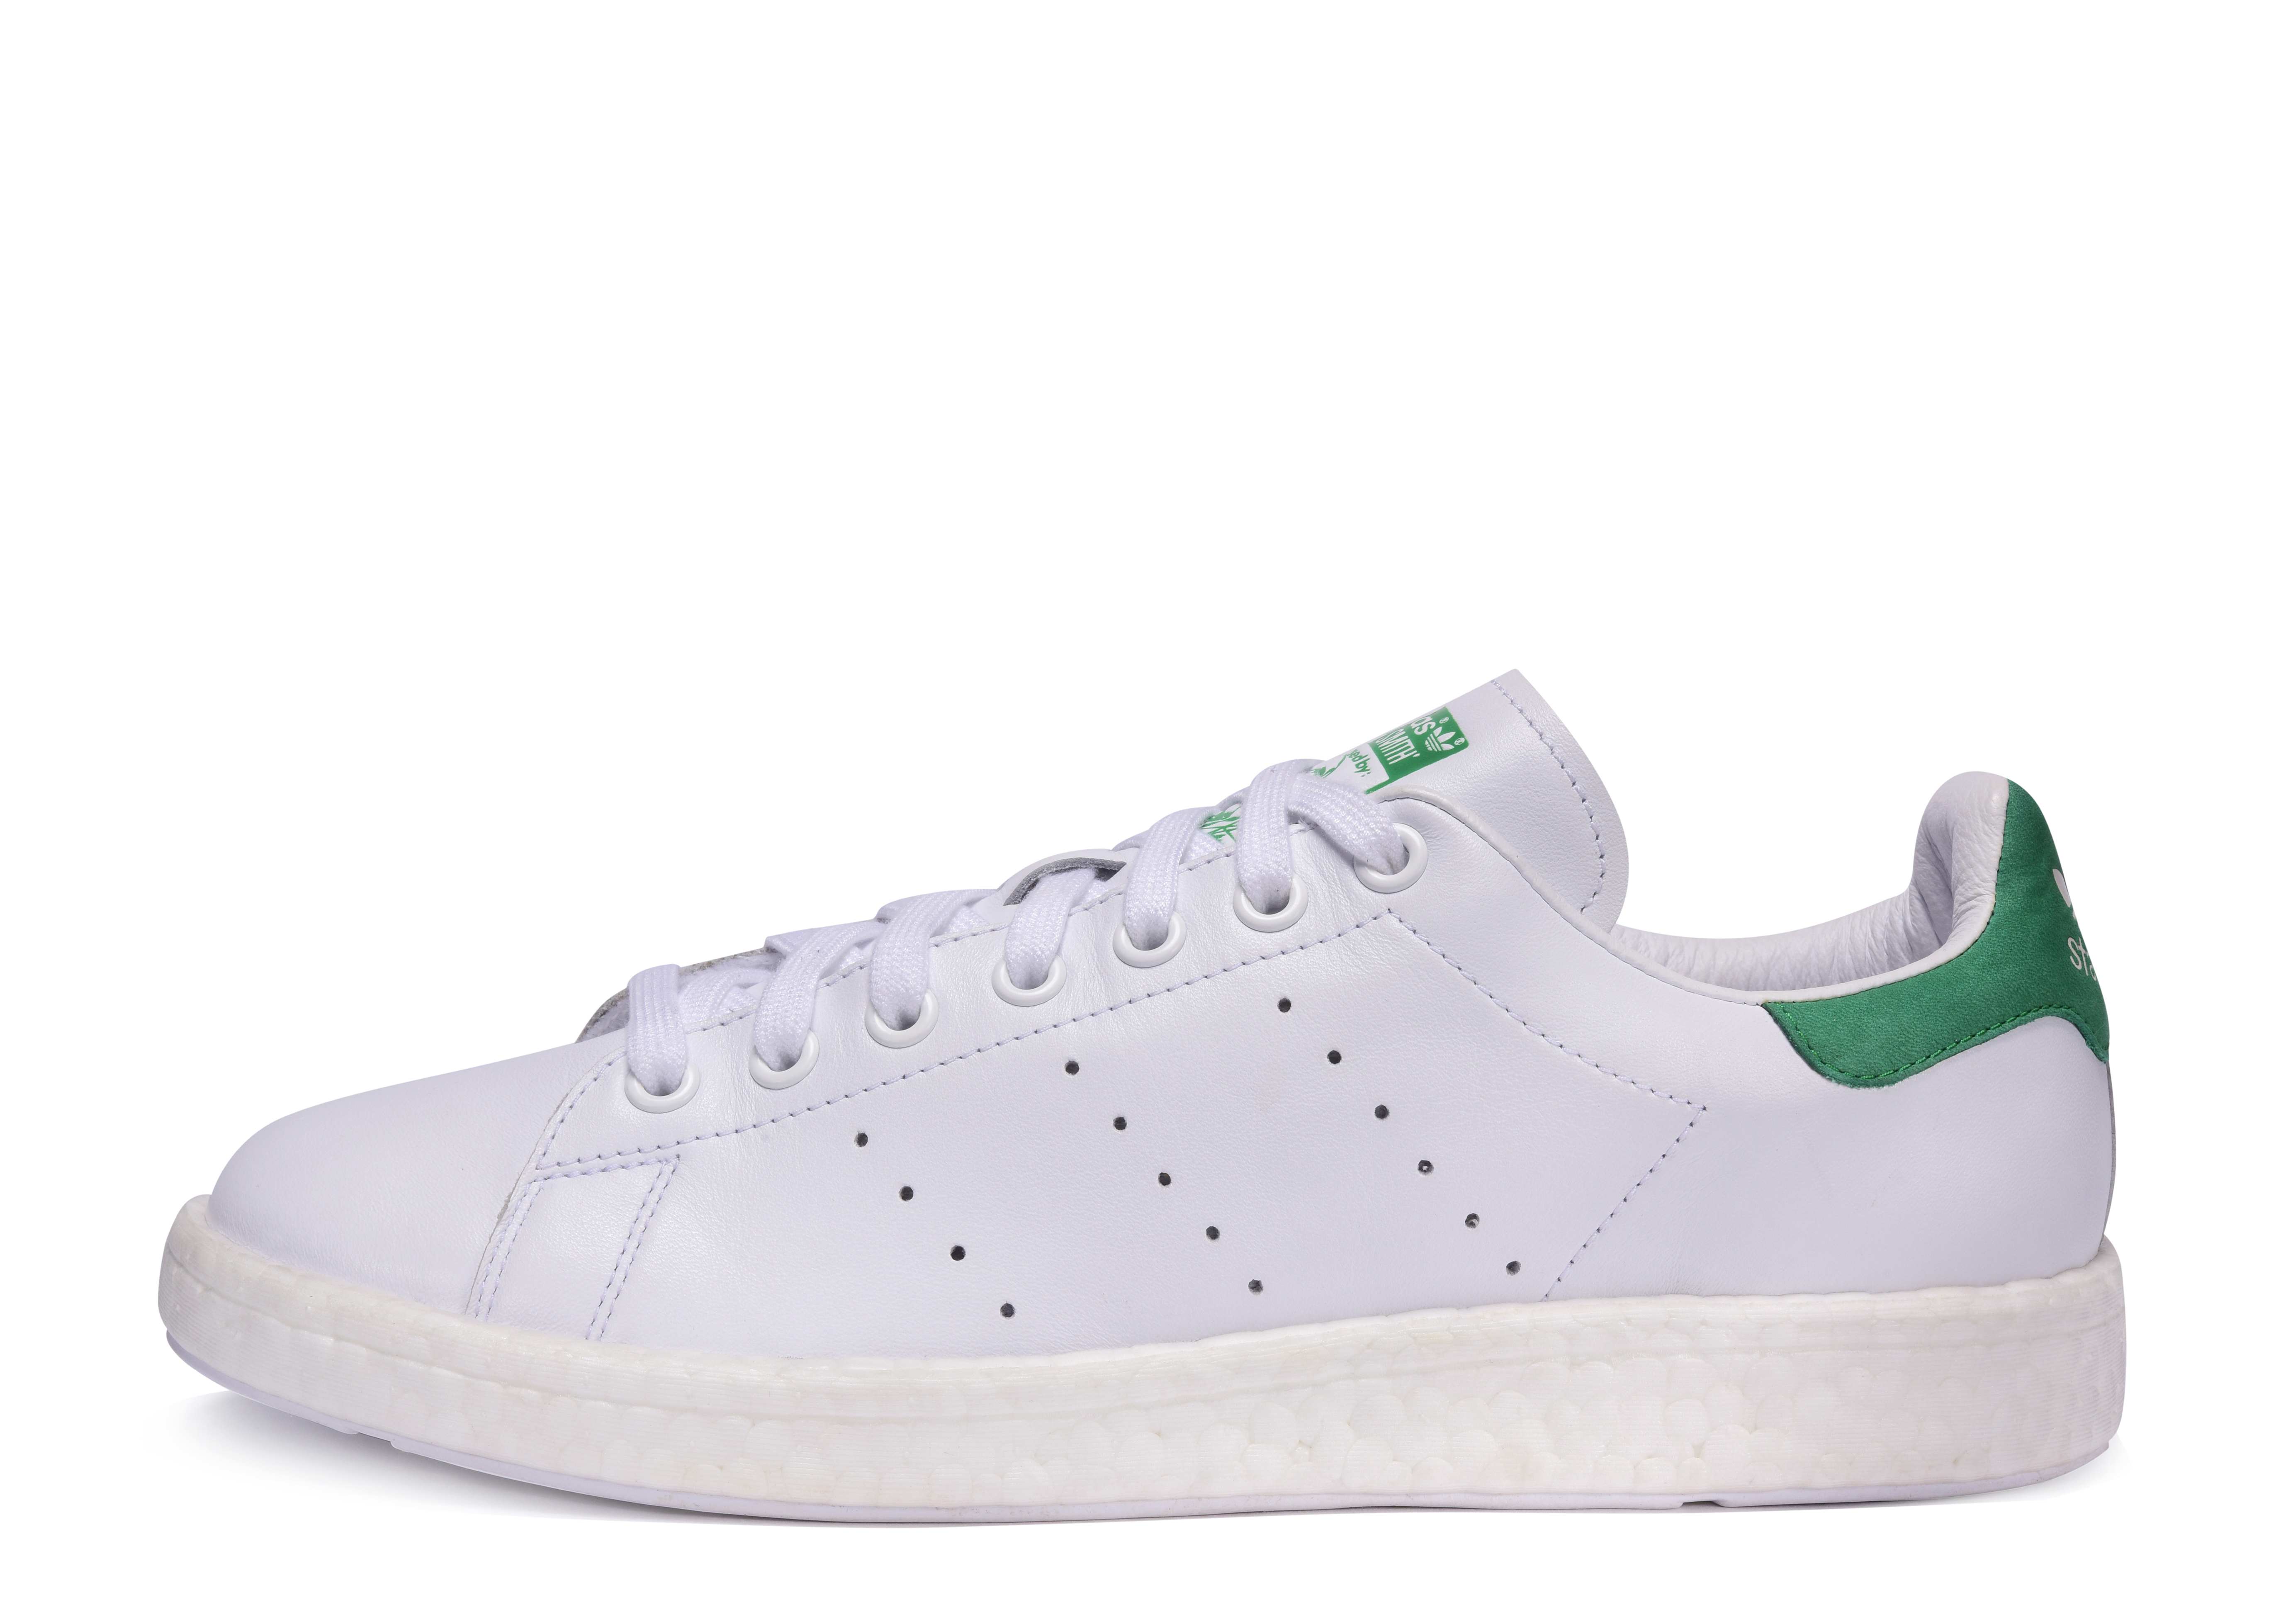 adidas Stan Smith Boost White Fairway